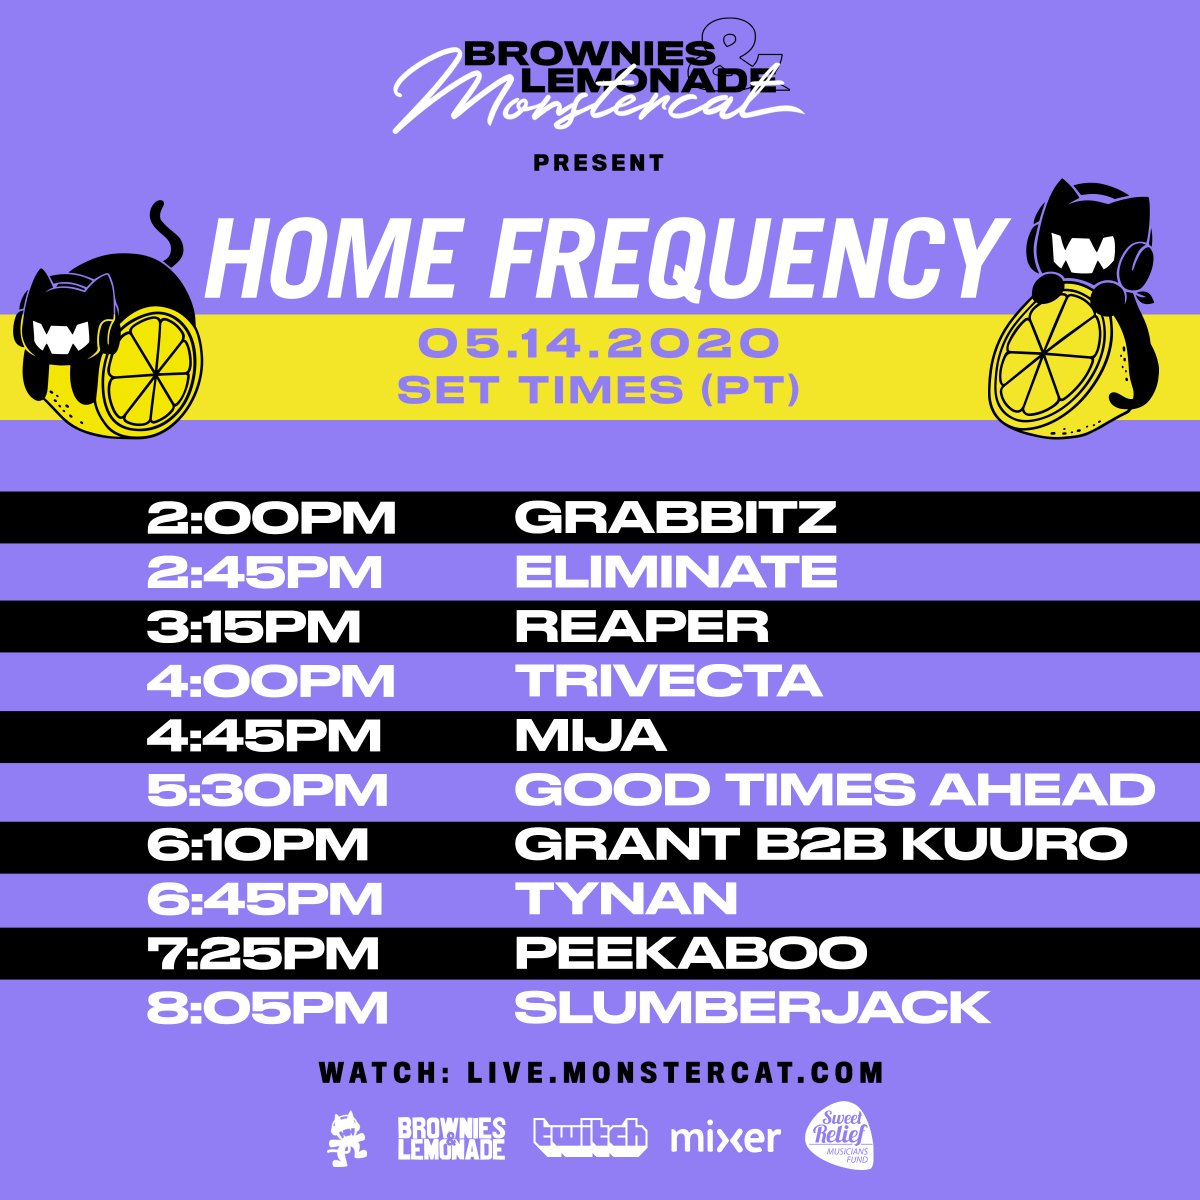 Home Frequency Set Times